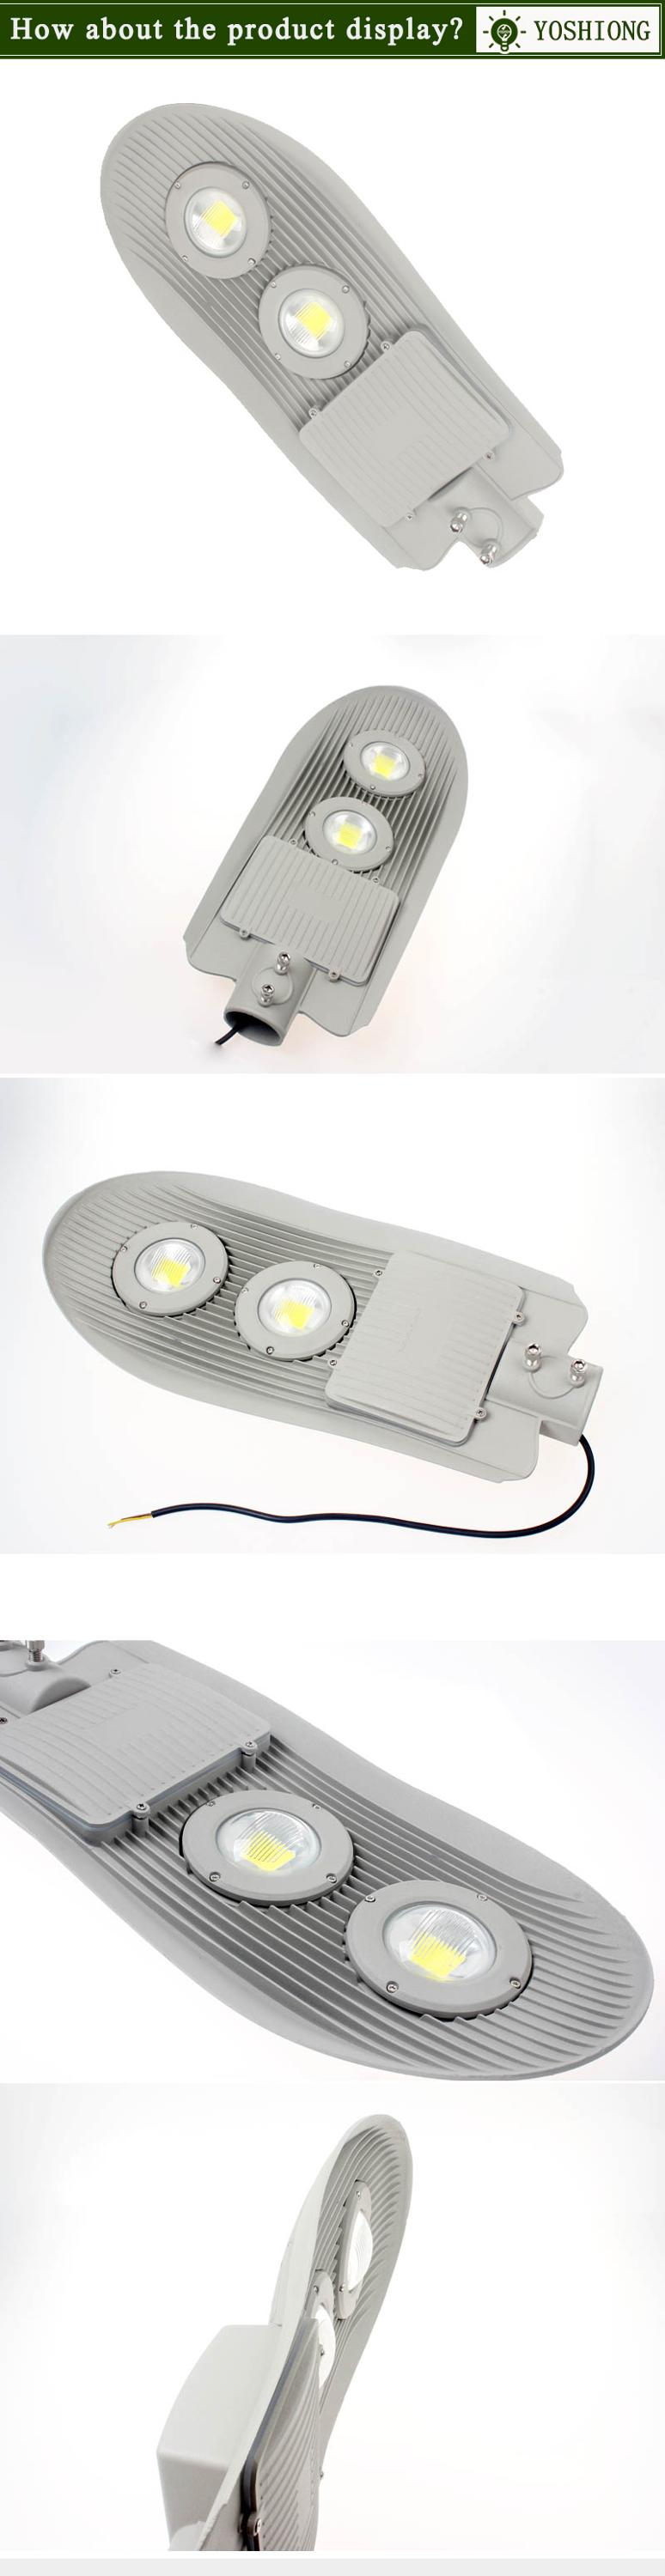 Manufacture in china 100w 120watt outdoor ip65 die casting aluminum manufacture in china 100w 120watt outdoor ip65 die casting aluminum led street light housing fixtures arubaitofo Image collections